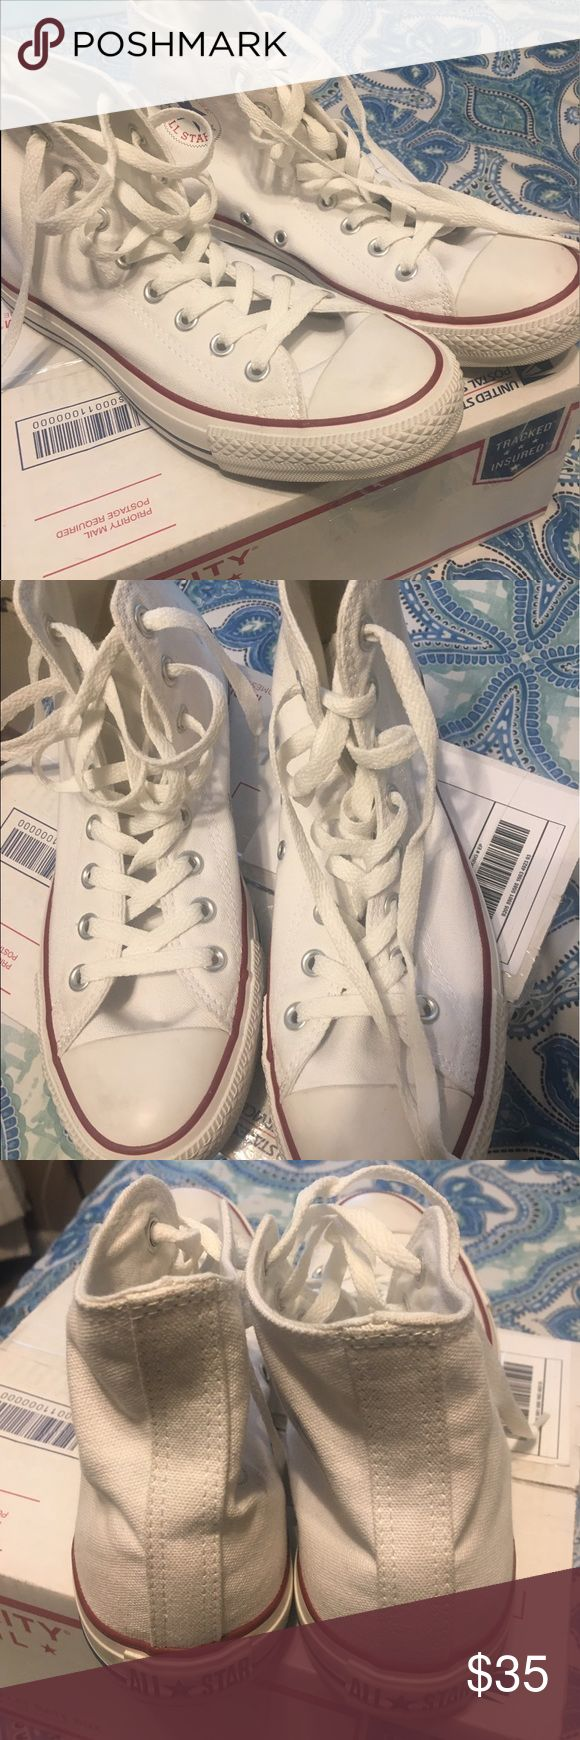 white high top converse almost brand new white high top converse. size 9.5 women's/ 7.5 men's Converse Shoes Sneakers